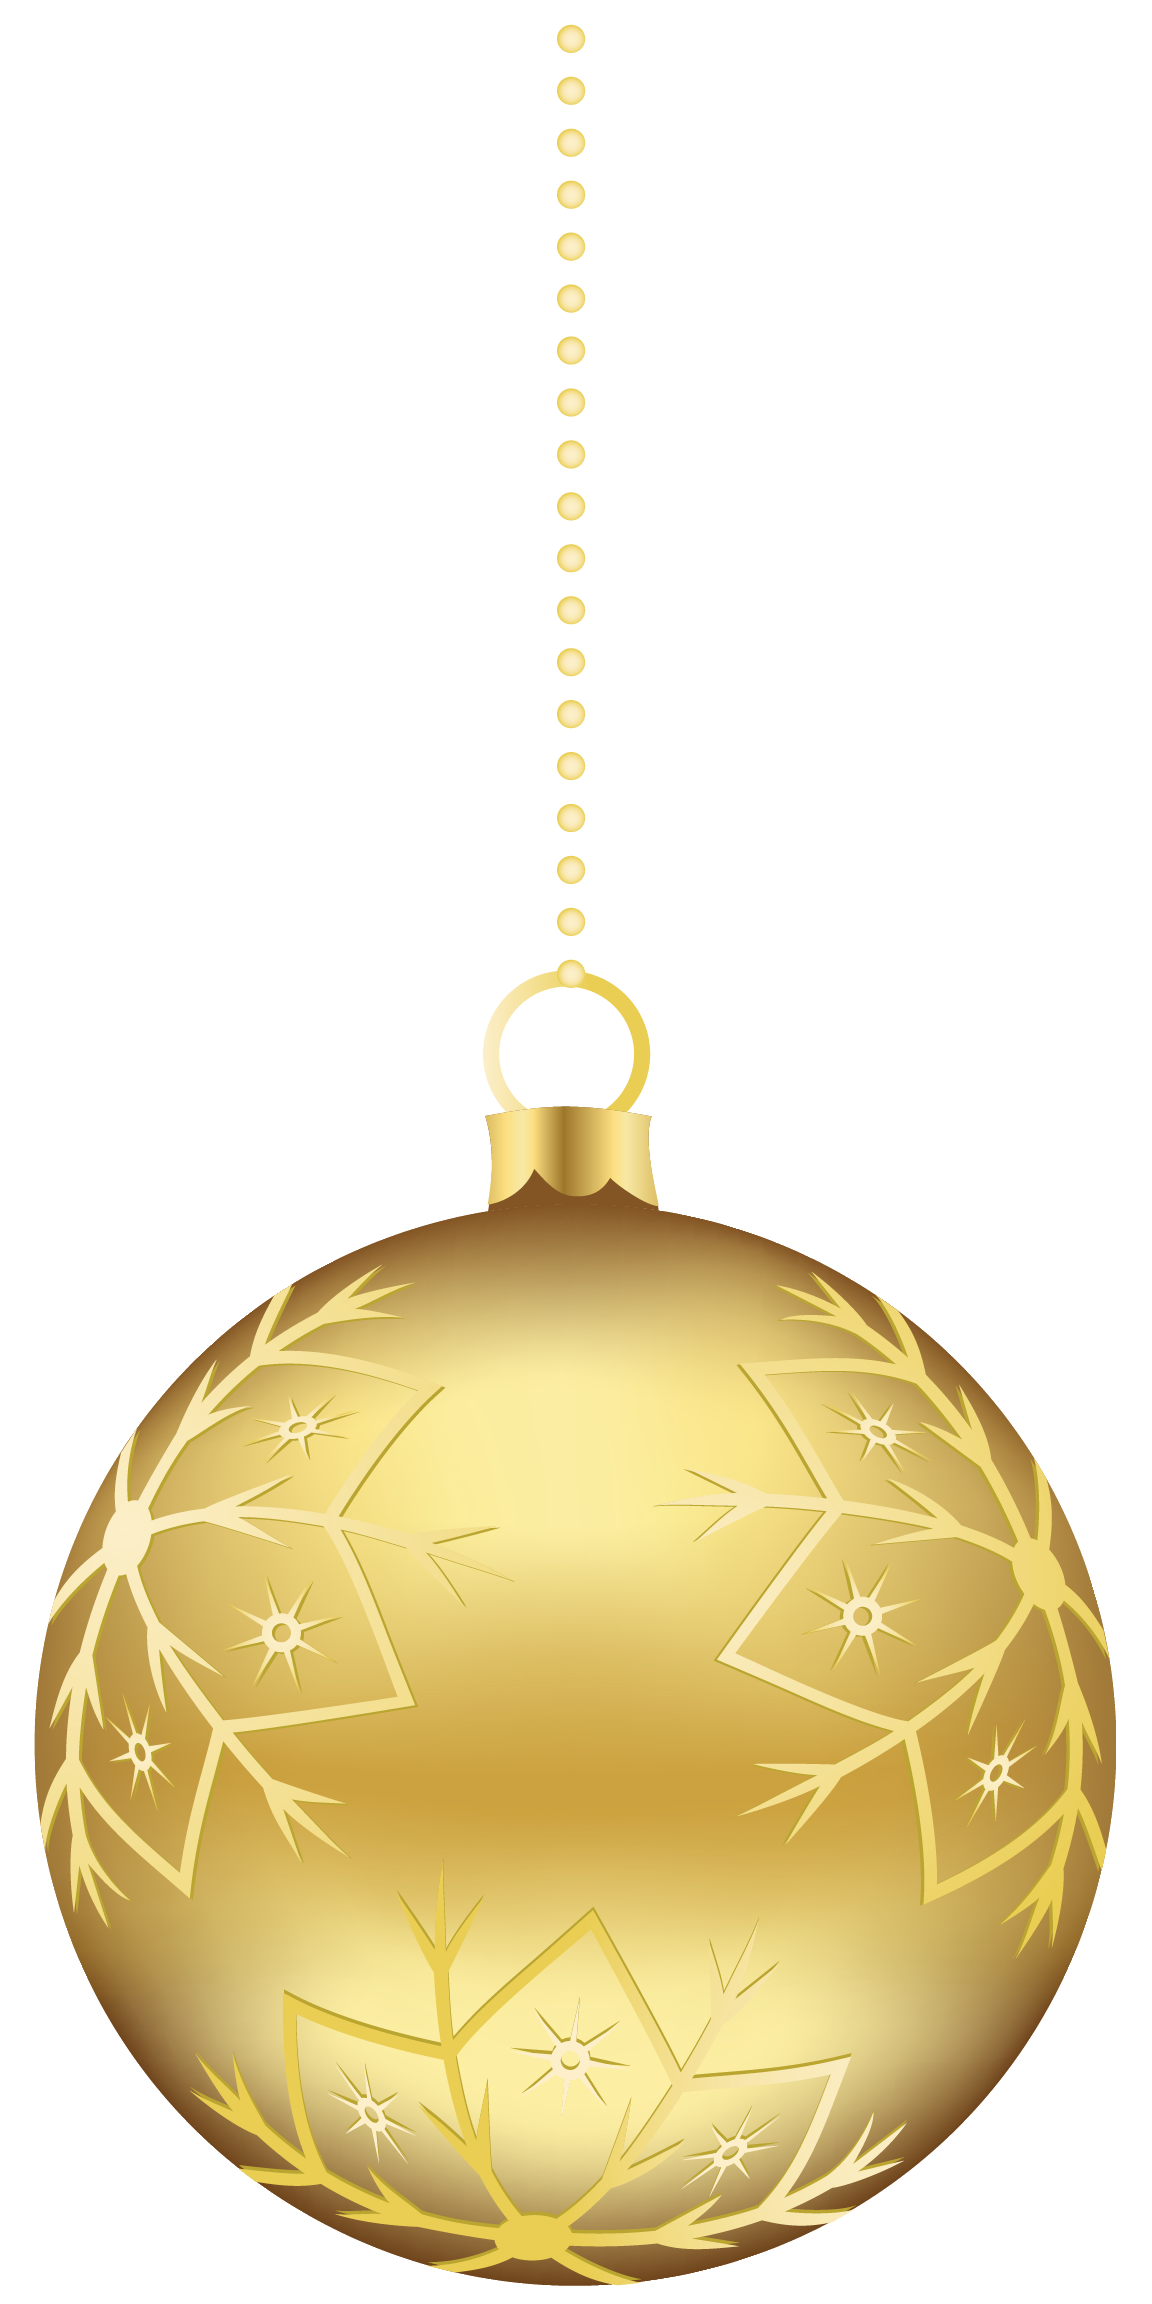 Yellow christmas ornaments png. Gold clipart free icons